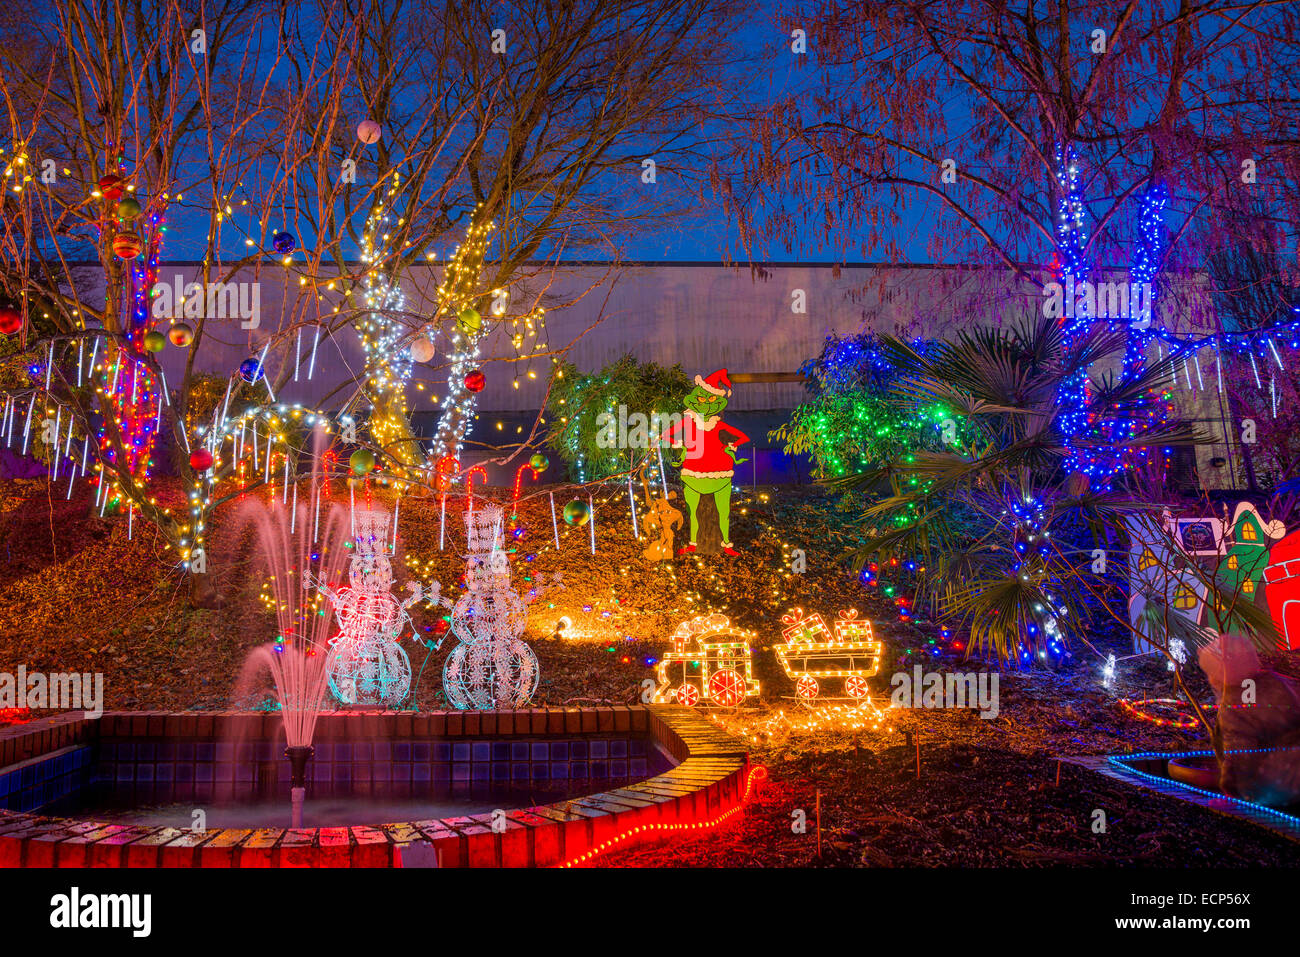 Christmas Light display, Park and Tilford Gardens, N. Vancouver, British Columbia, Canada - Stock Image